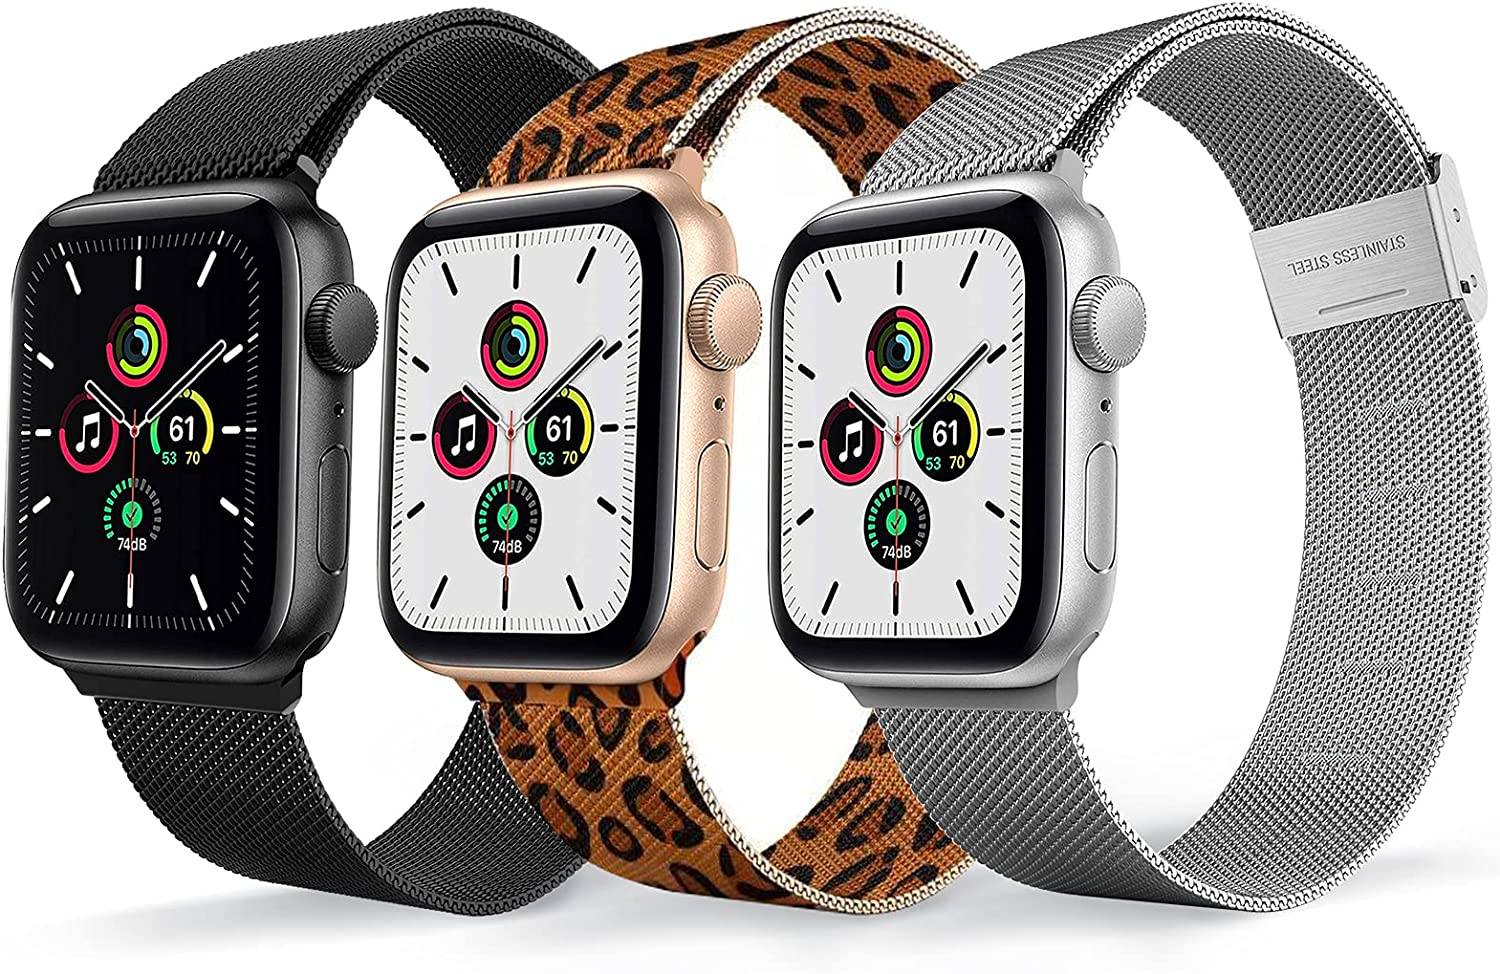 Magnetic Watch Band Compatible for Apple Watch Bands 38mm 40mm 42mm 44mm,3 Pack Replacement Milanese Bands for iwatch Iseries 6 series 3 series SE Women Men, Loop Stainless Steel Mesh Metal Balck Sliver Leopard